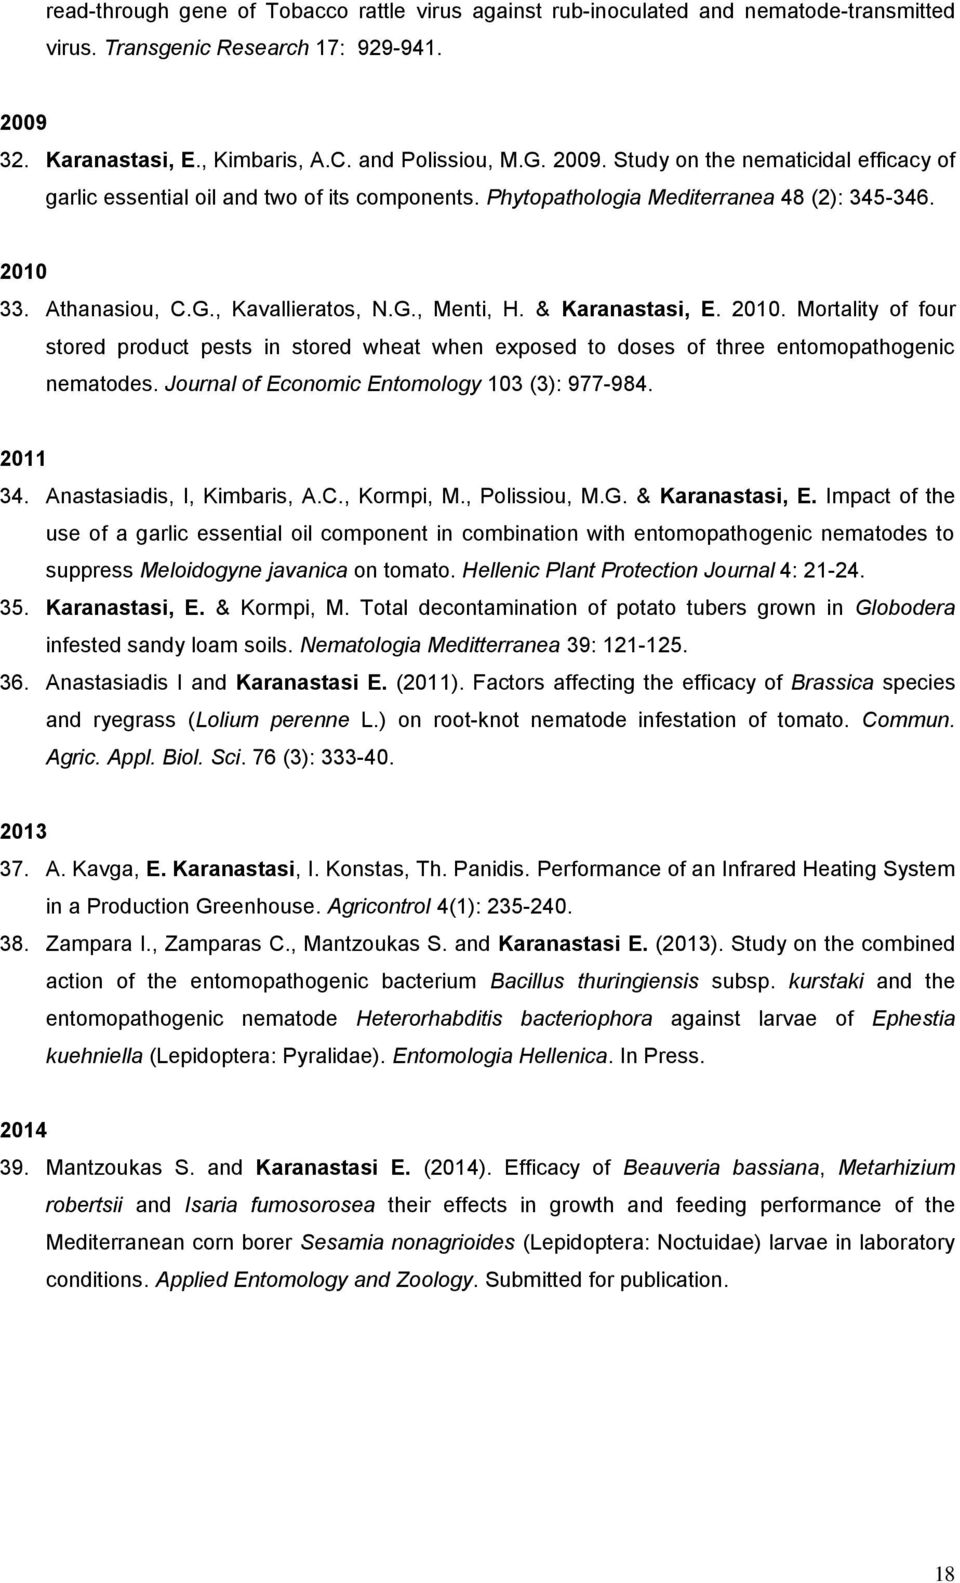 2010 33. Athanasiou, C.G., Kavallieratos, N.G., Menti, H. & Karanastasi, E. 2010. Mortality of four stored product pests in stored wheat when exposed to doses of three entomopathogenic nematodes.